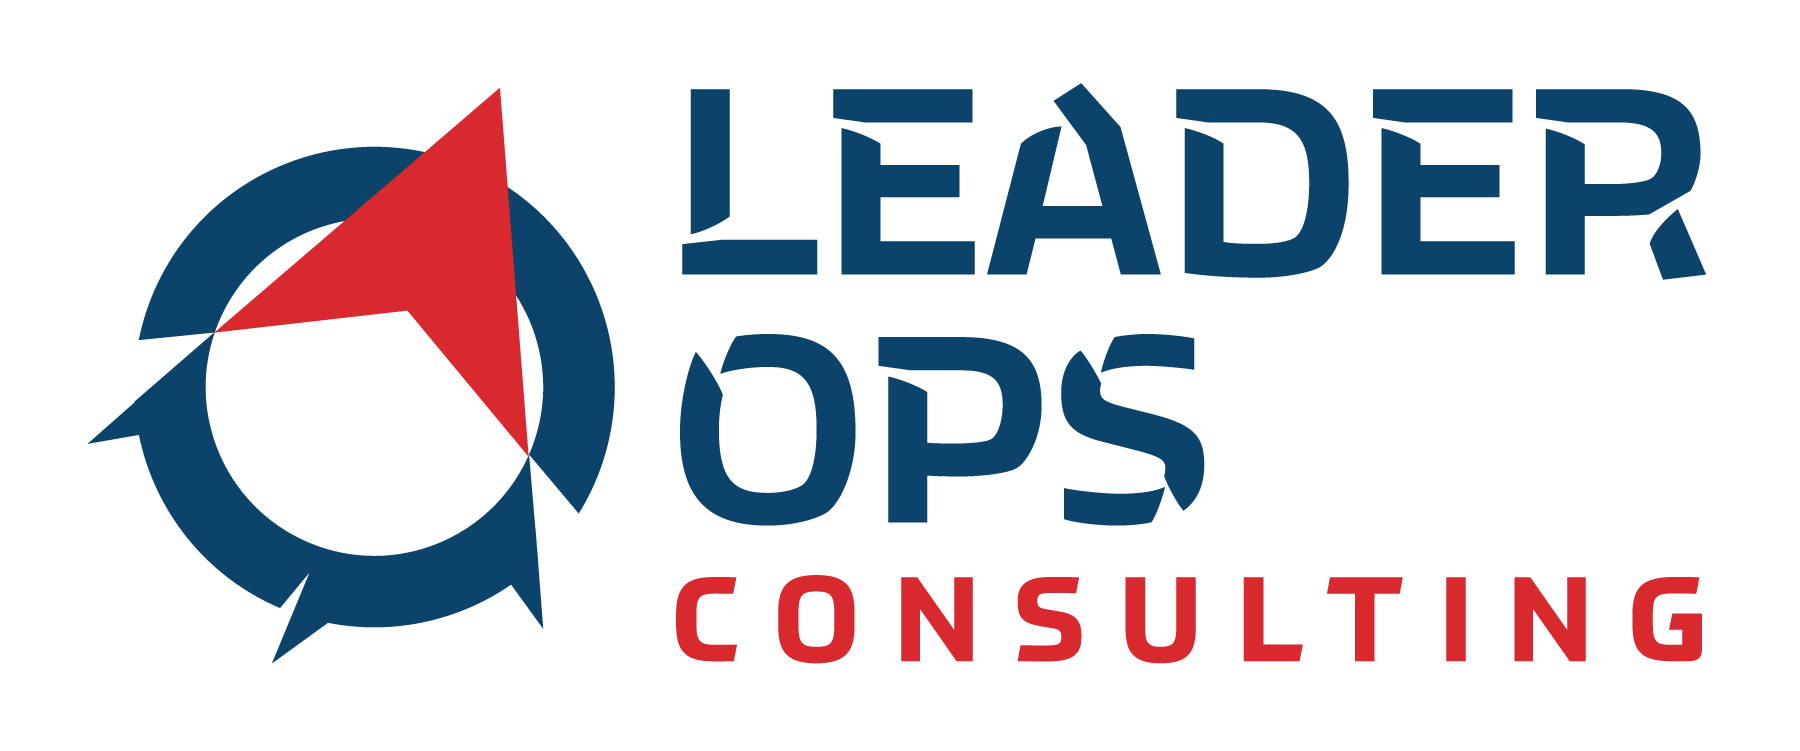 Leader Ops Consulting Logo - RGB